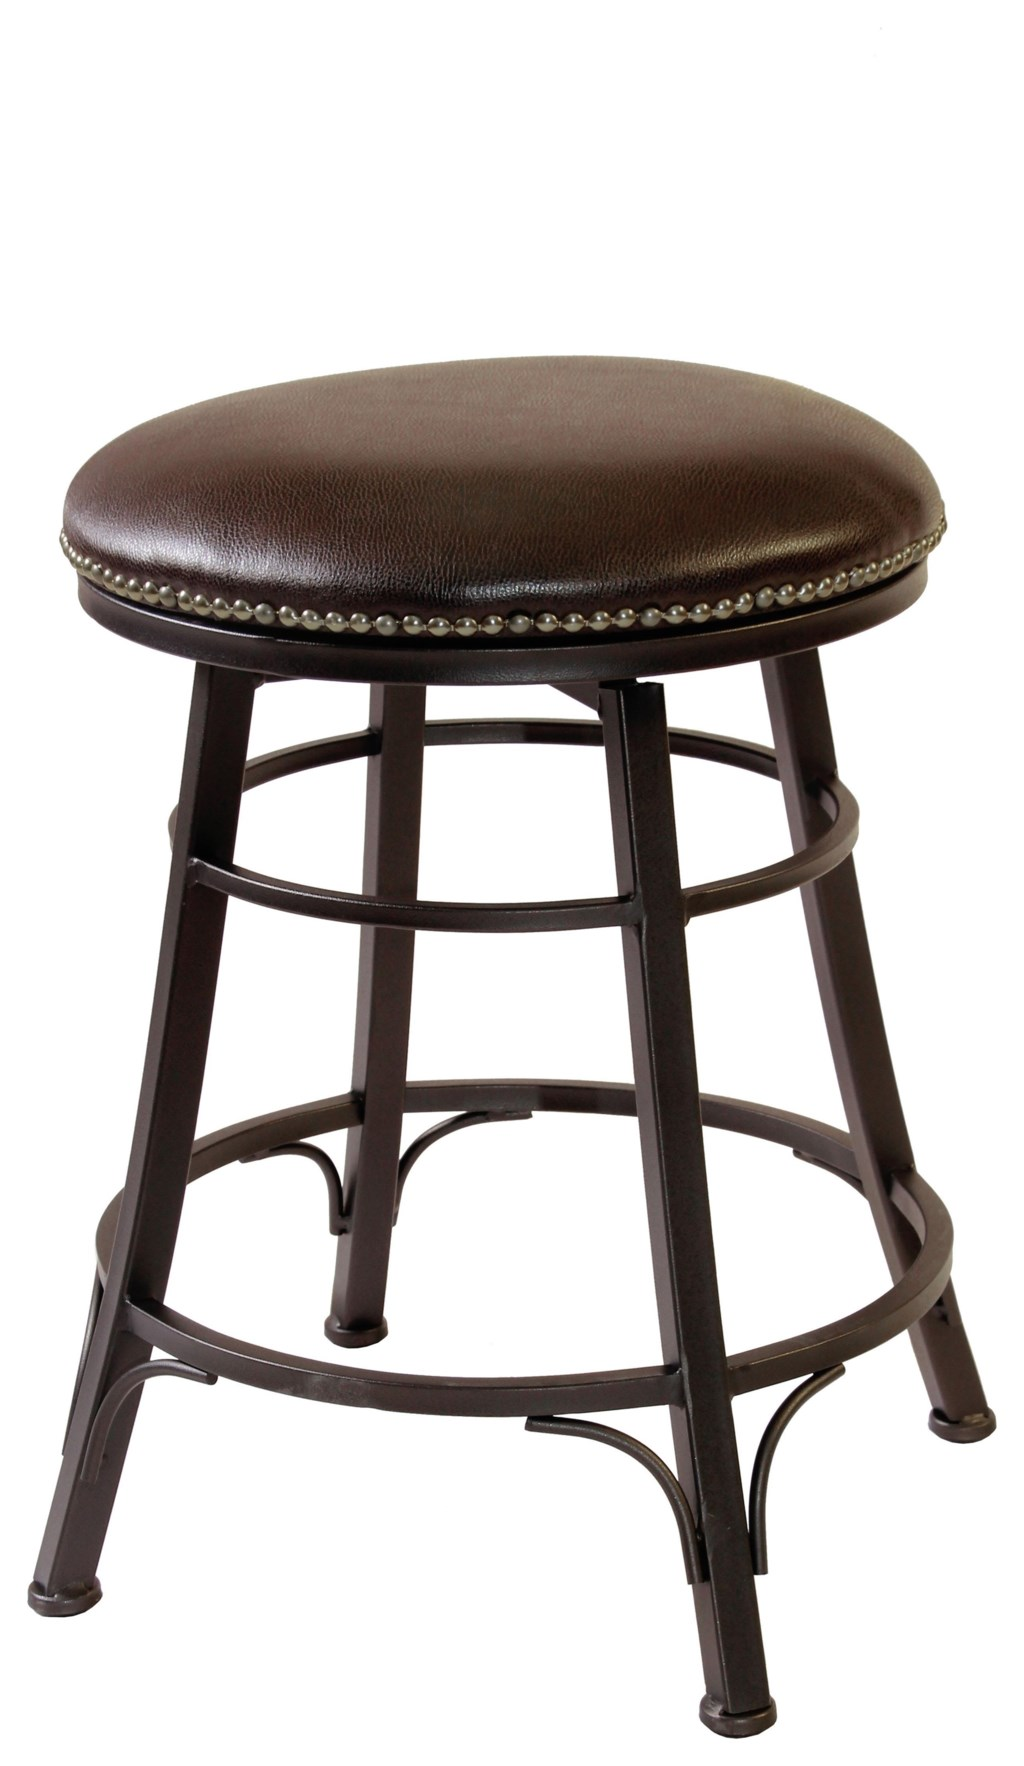 Cym Furniture Barstools Swivel Metal Backless Barstool Conlins